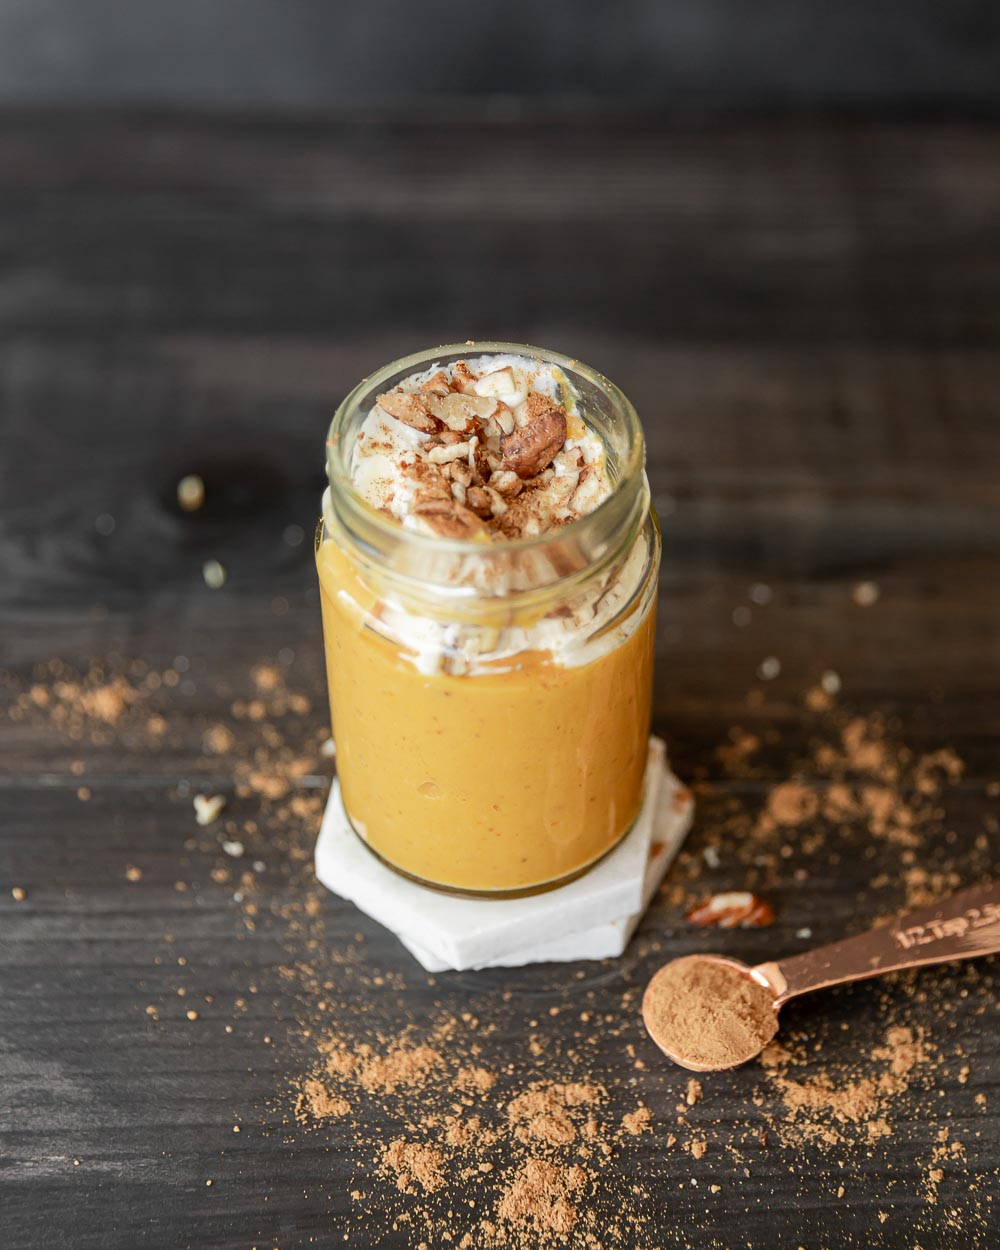 Step out of your smoothie rut with this perfect fall smoothie - pumpkin and mango smoothie. Made with simple ingredients, this refreshing smoothie makes a quick and easy breakfast or snack.